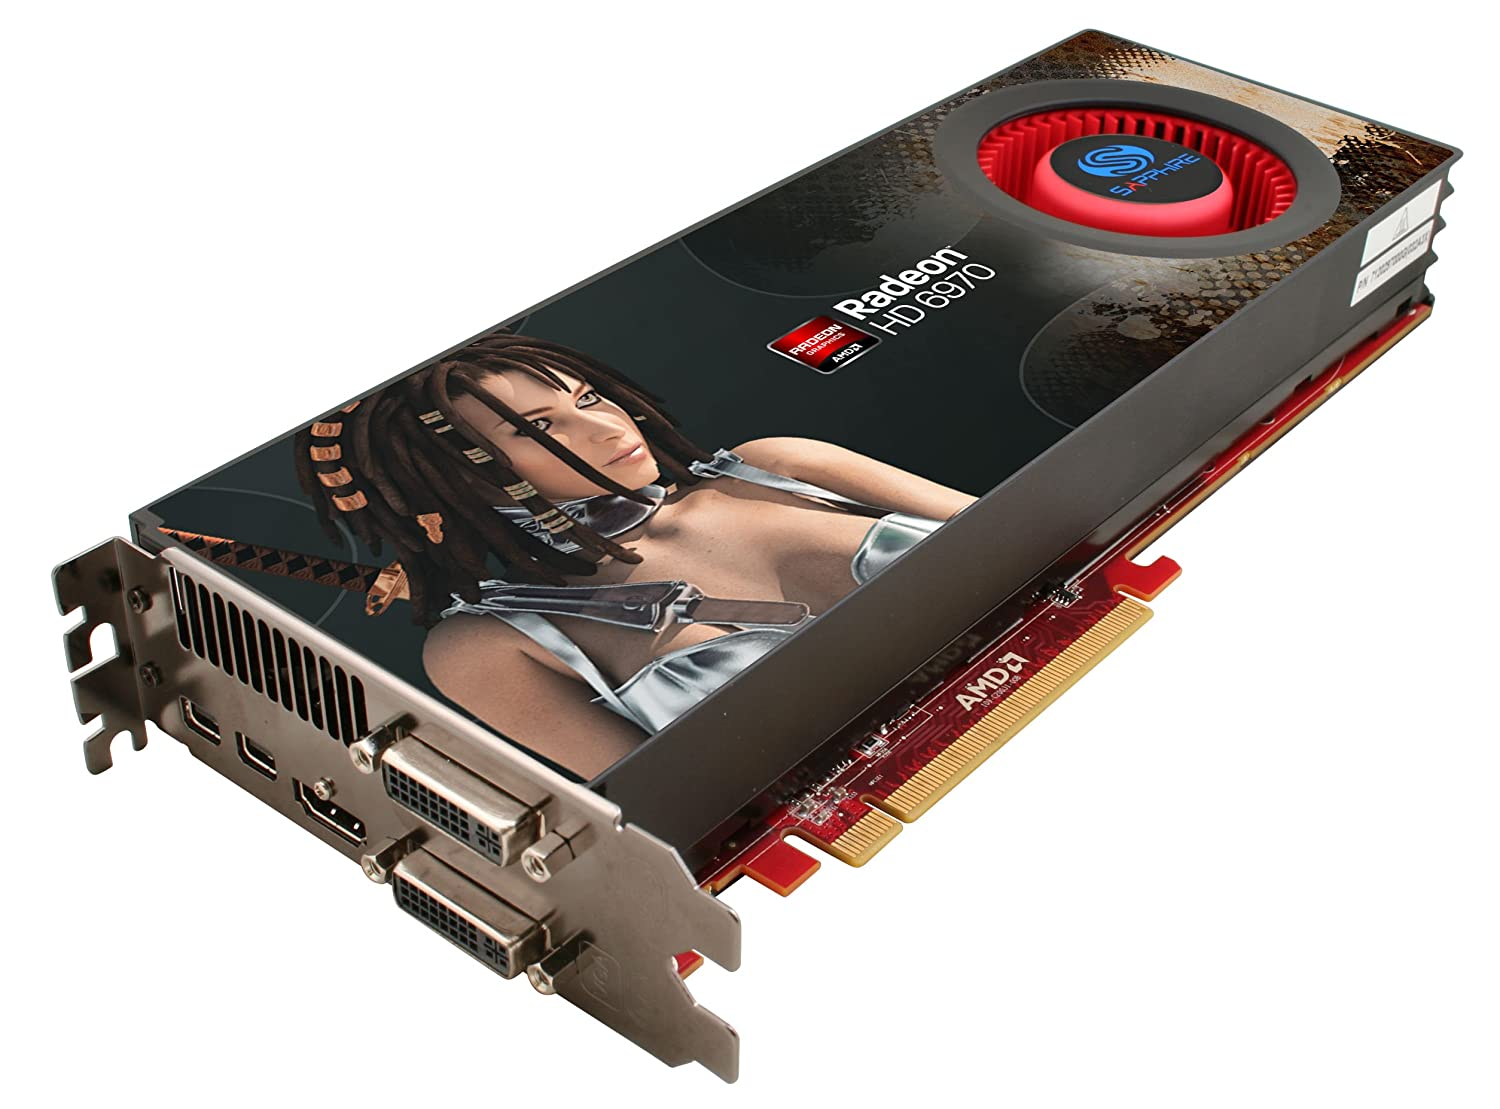 RADEON 6970 DRIVERS FOR WINDOWS VISTA